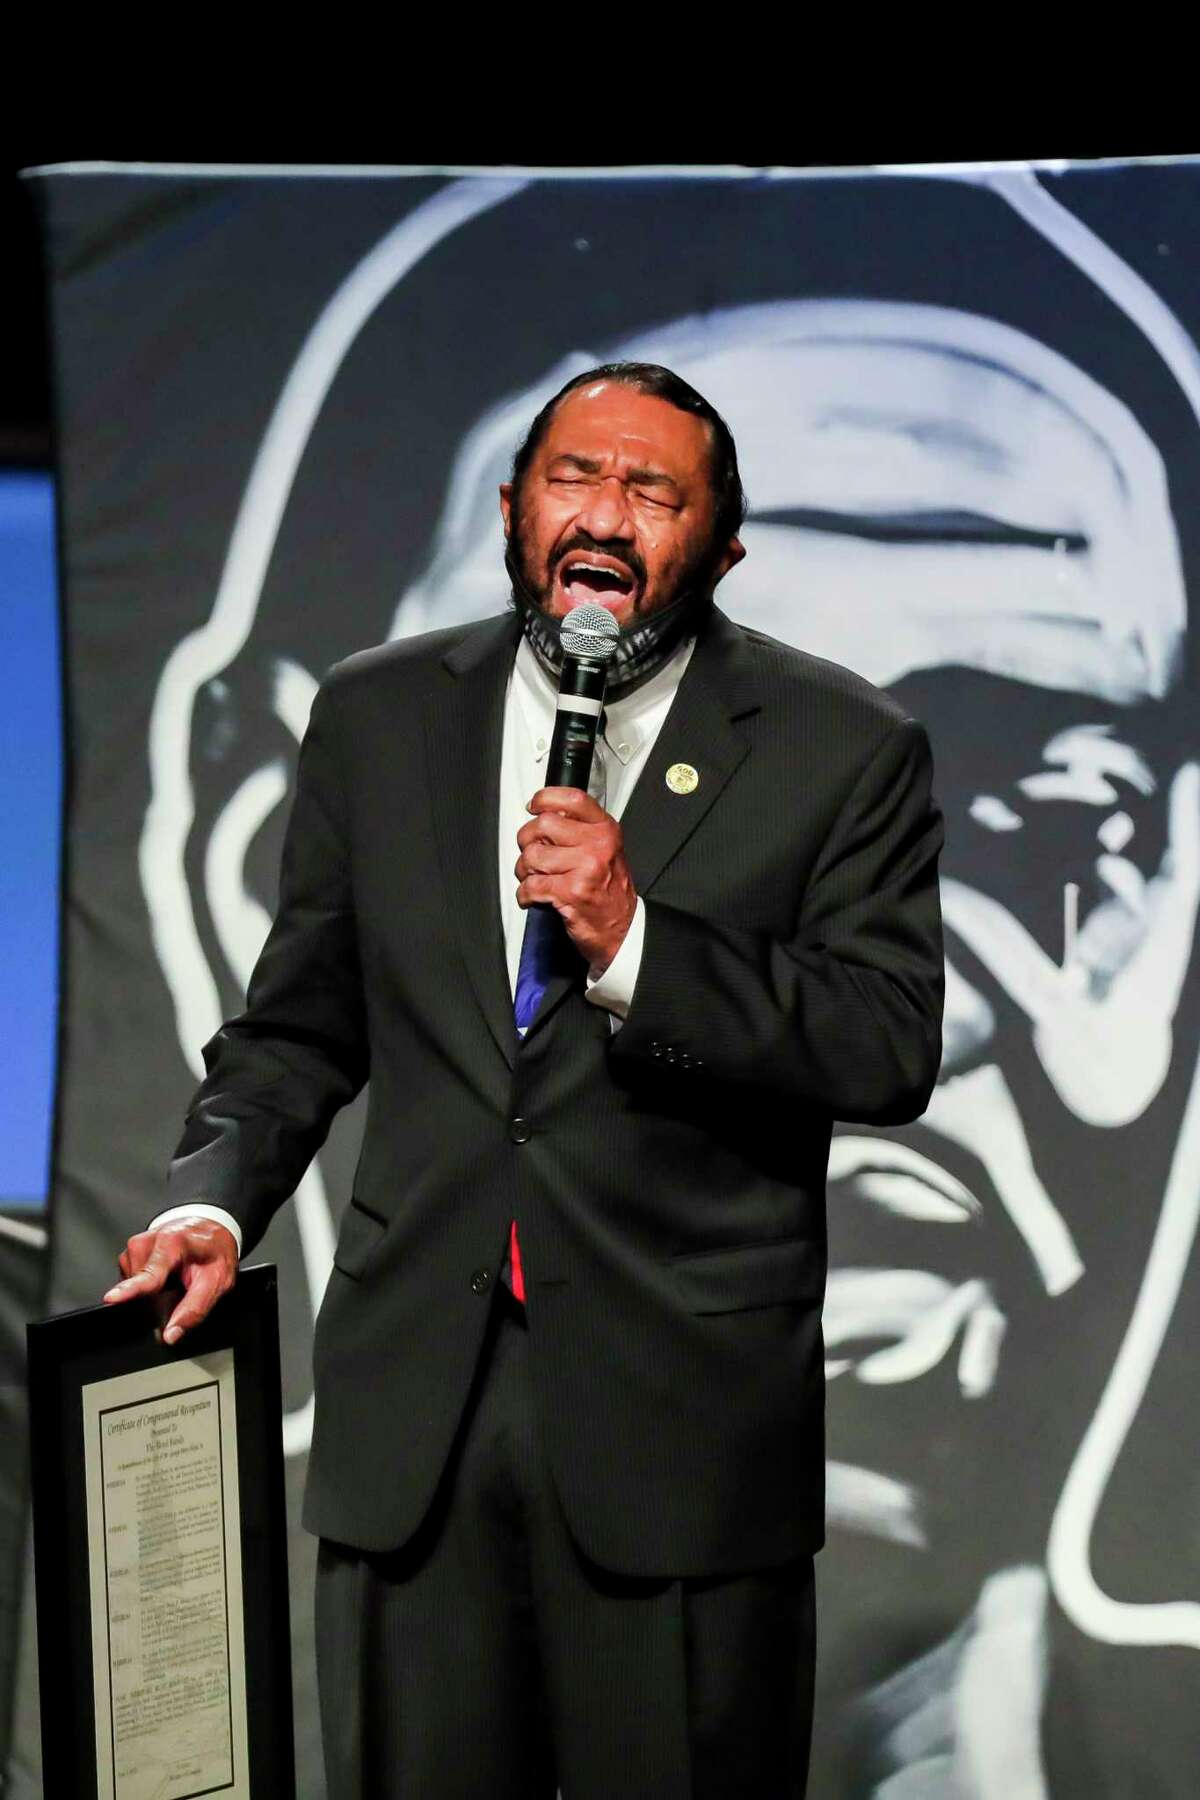 U.S. Rep. Al Green speaks during the funeral for George Floyd last week at The Fountain of Praise church in Houston. Floyd died after being restrained by Minneapolis Police officers on May 25. A reader suggests creating government incentives to cover higher education costs for African Americans.